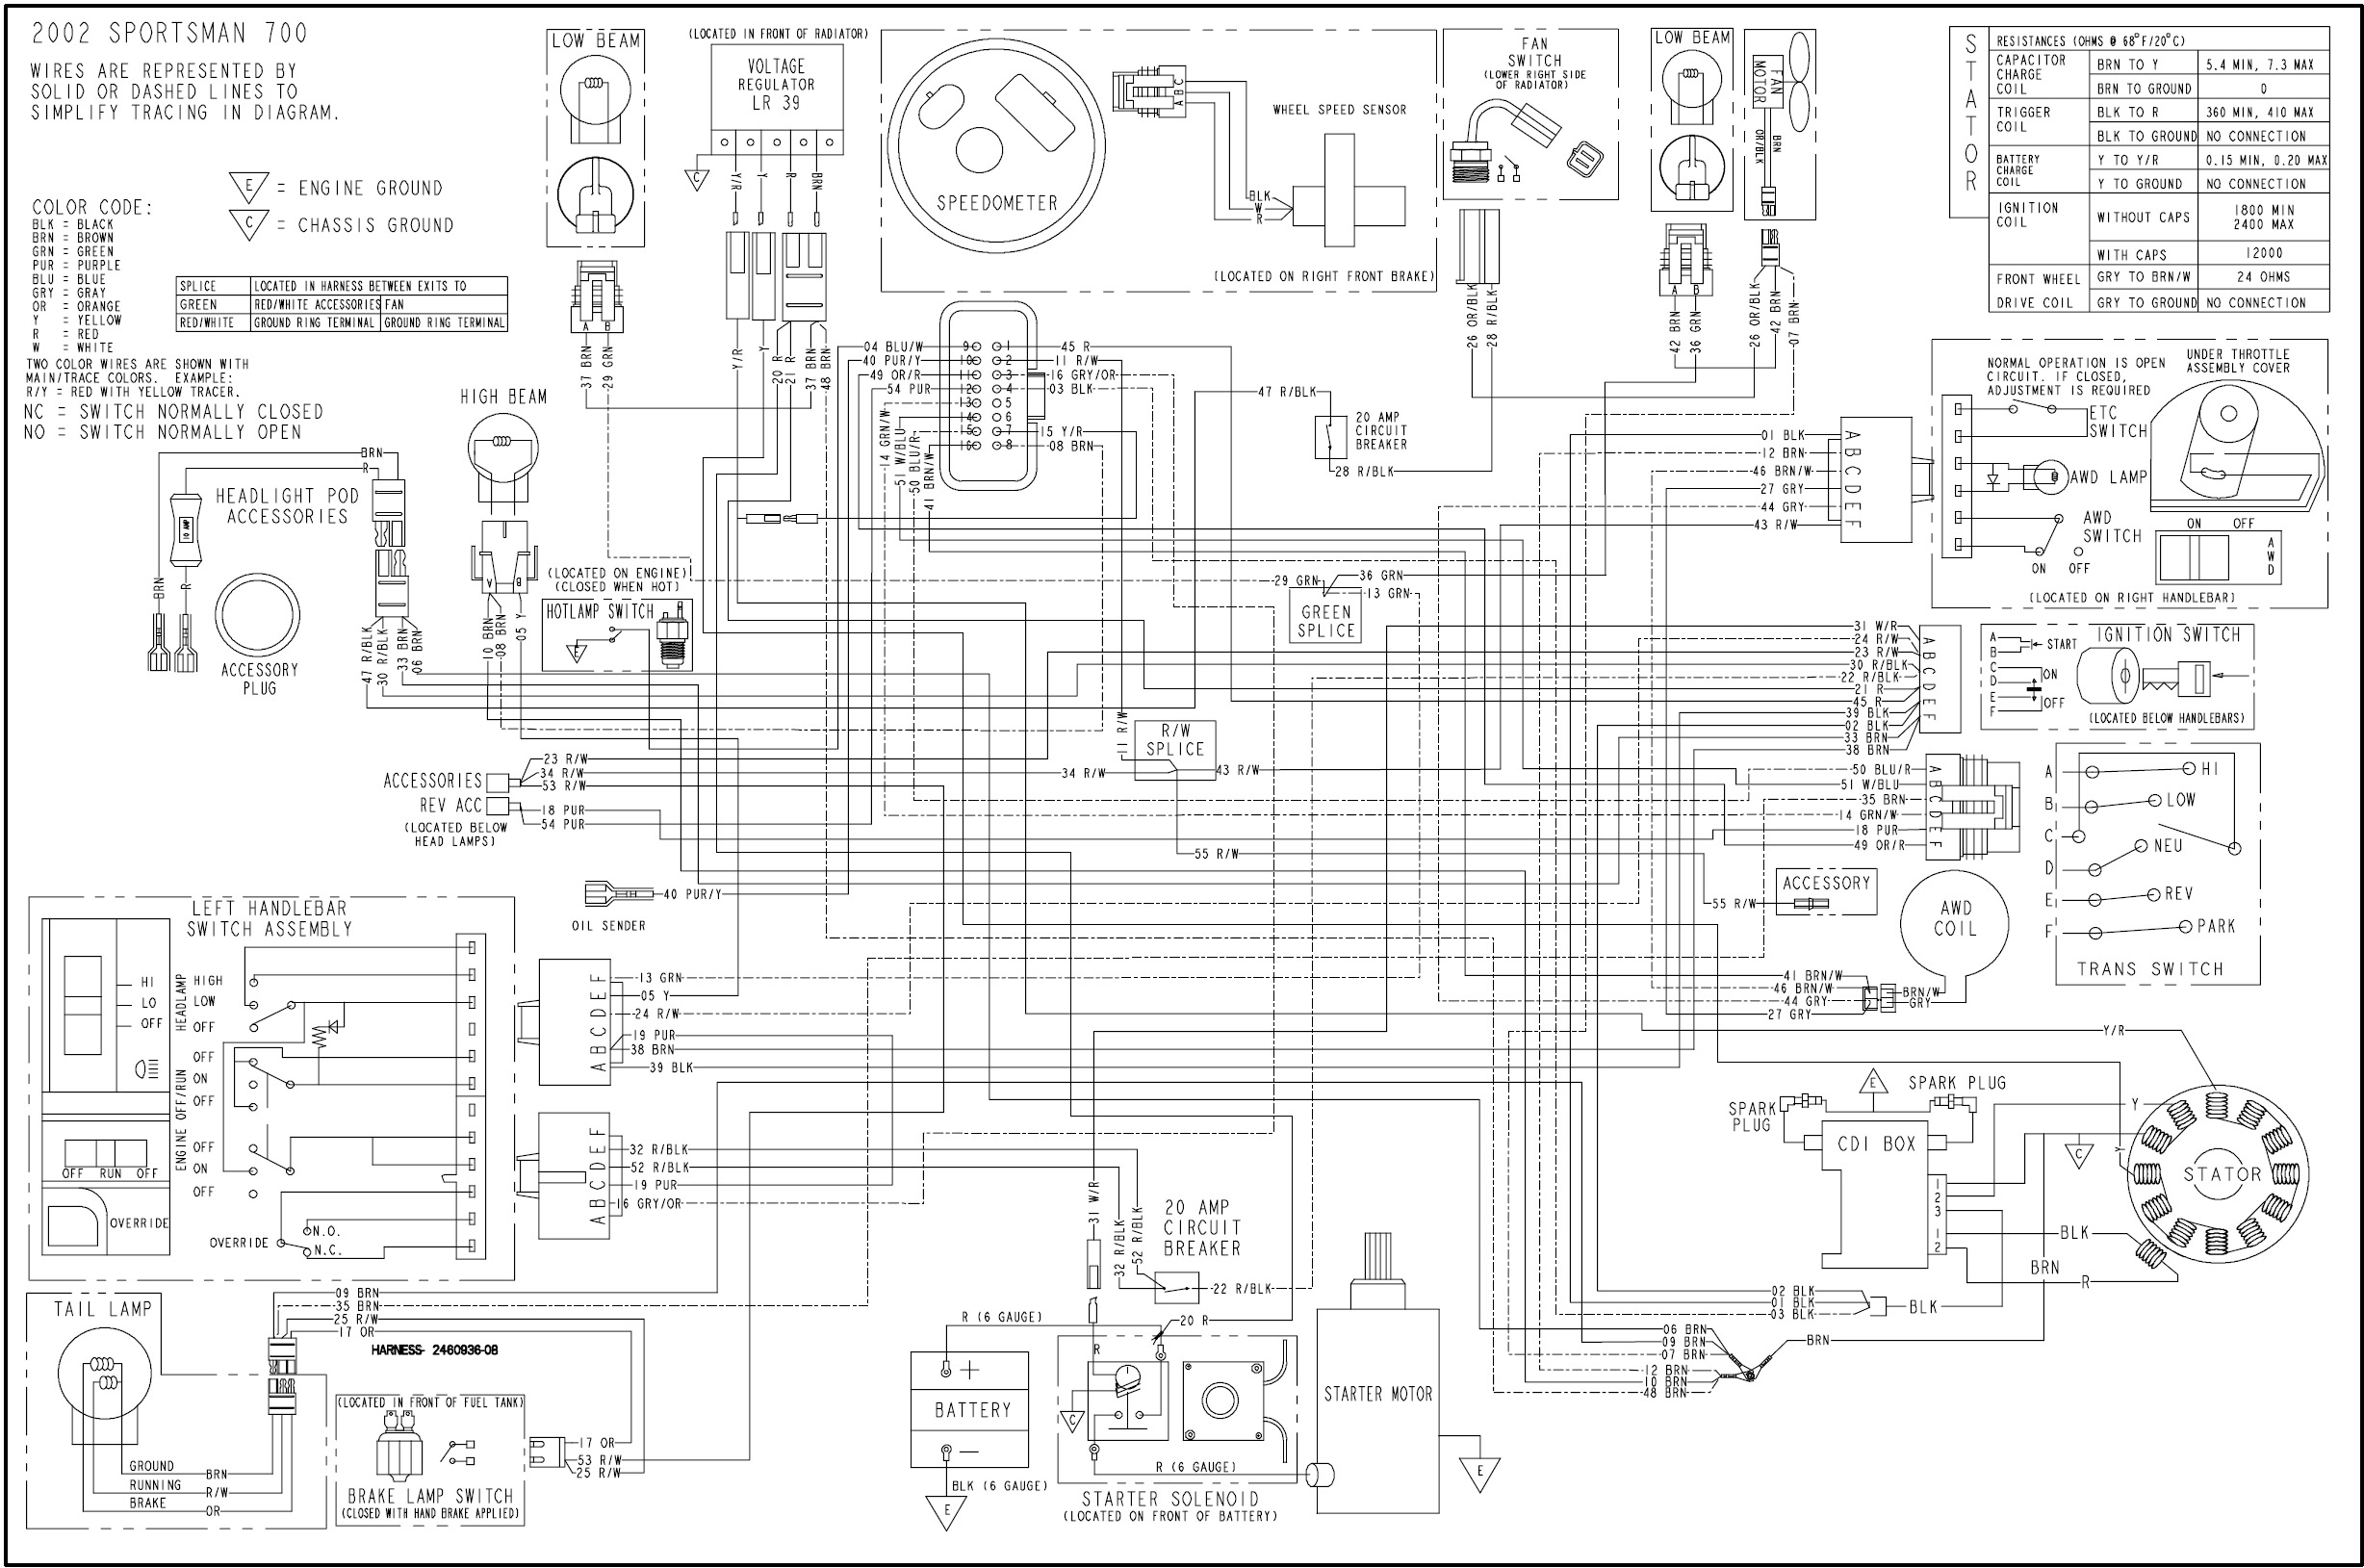 polaris sportsman 550 wiring diagram basic electronics wiring diagram Polaris ATP 500 HO Wiring-Diagram 2004 polaris sportsman 500 ignition wiring diagram 13 brt feba06 polaris ranger 500 wiring diagram 5